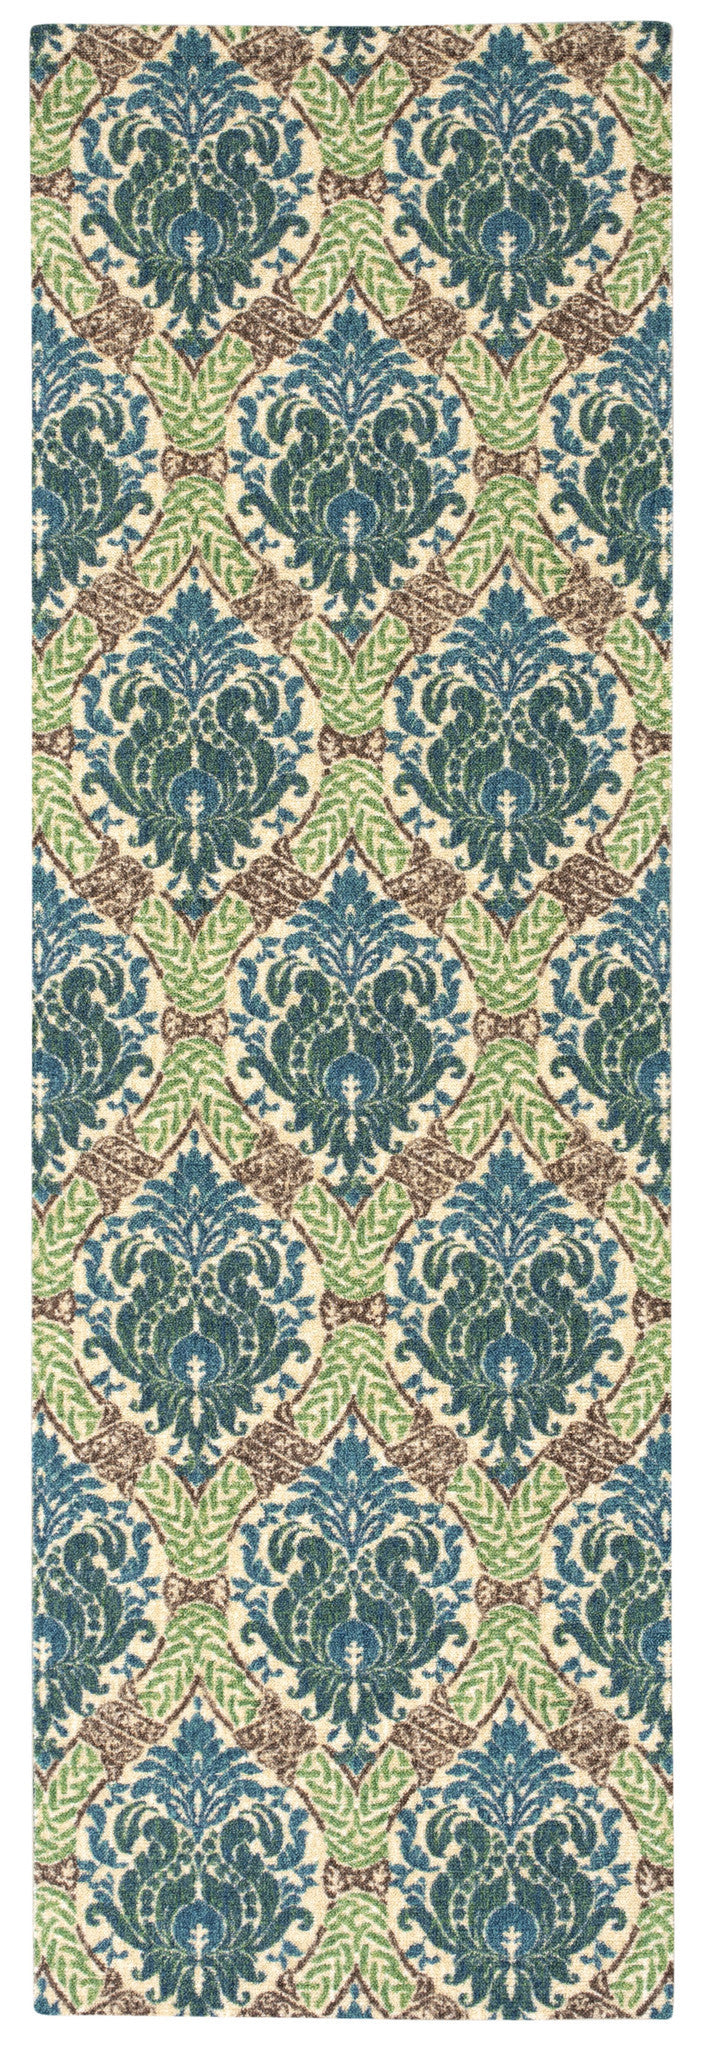 Waverly Treasures Dress Up Damask Blue Jay Area Rug By Nourison WTR03 BLJAY